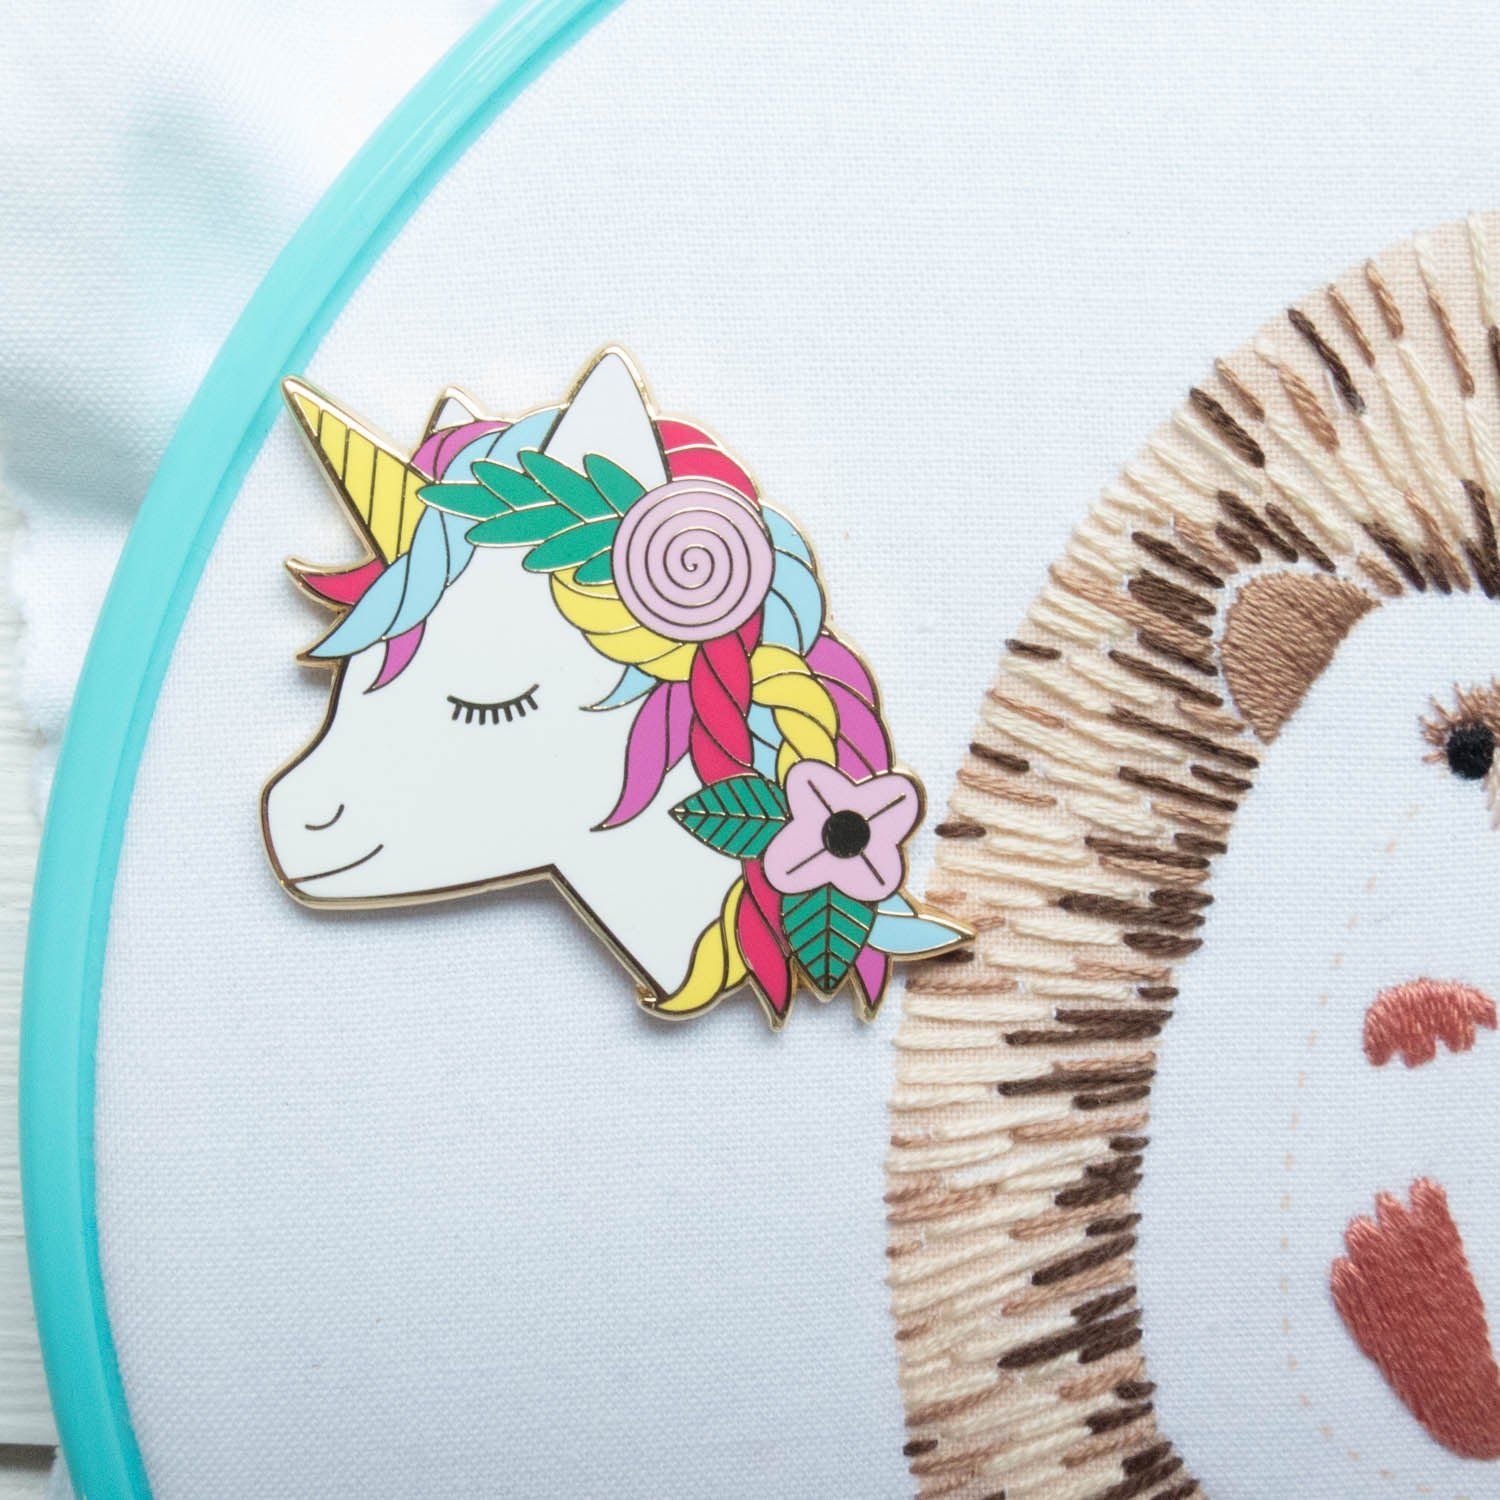 Unicorn Enamel Needle Minder Needle Minder - Snuggly Monkey